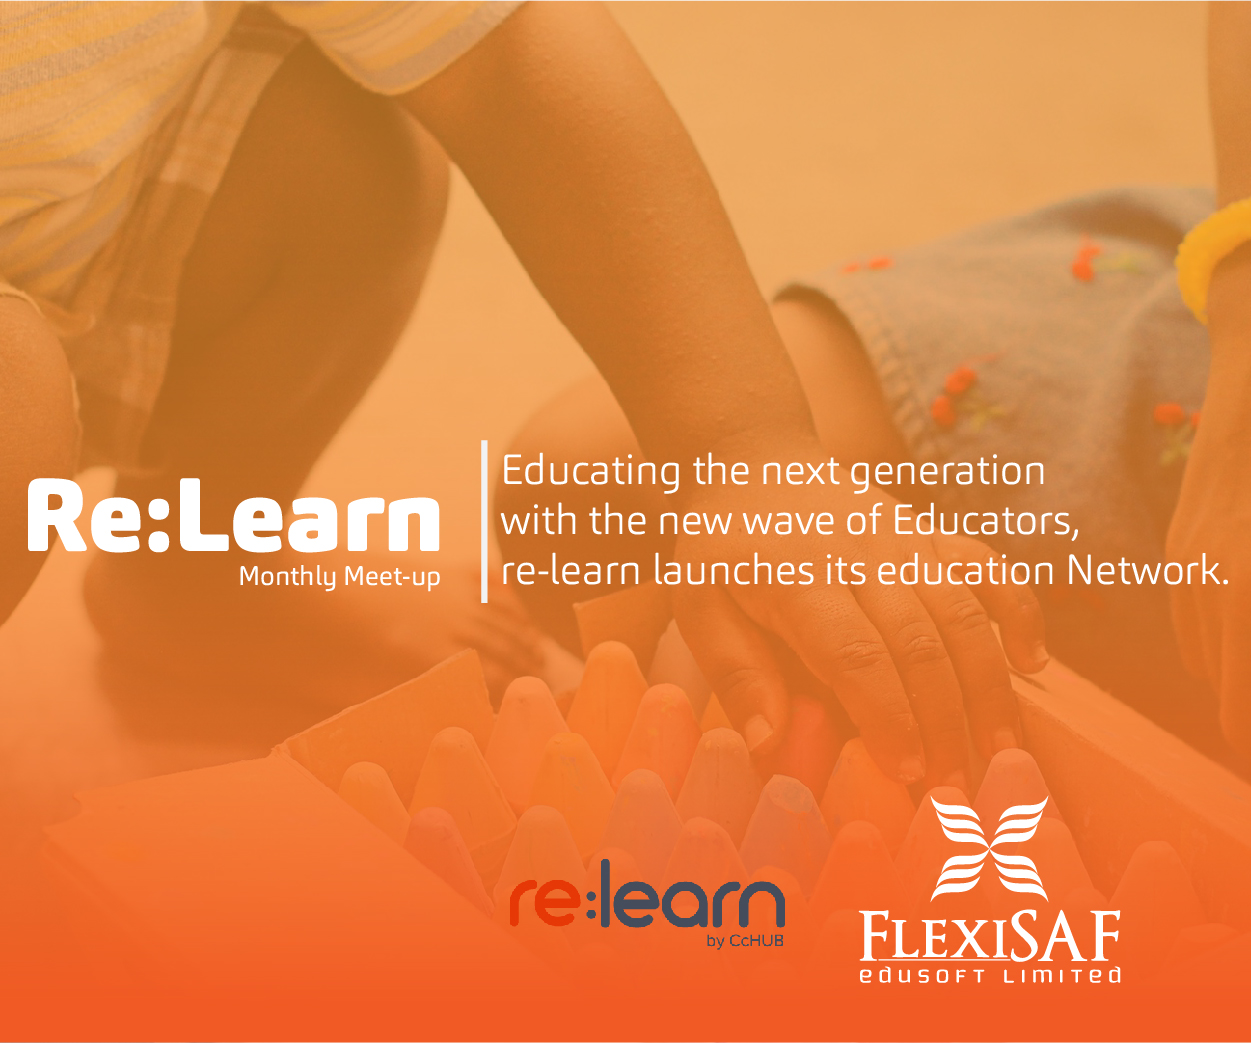 relearn launches education network